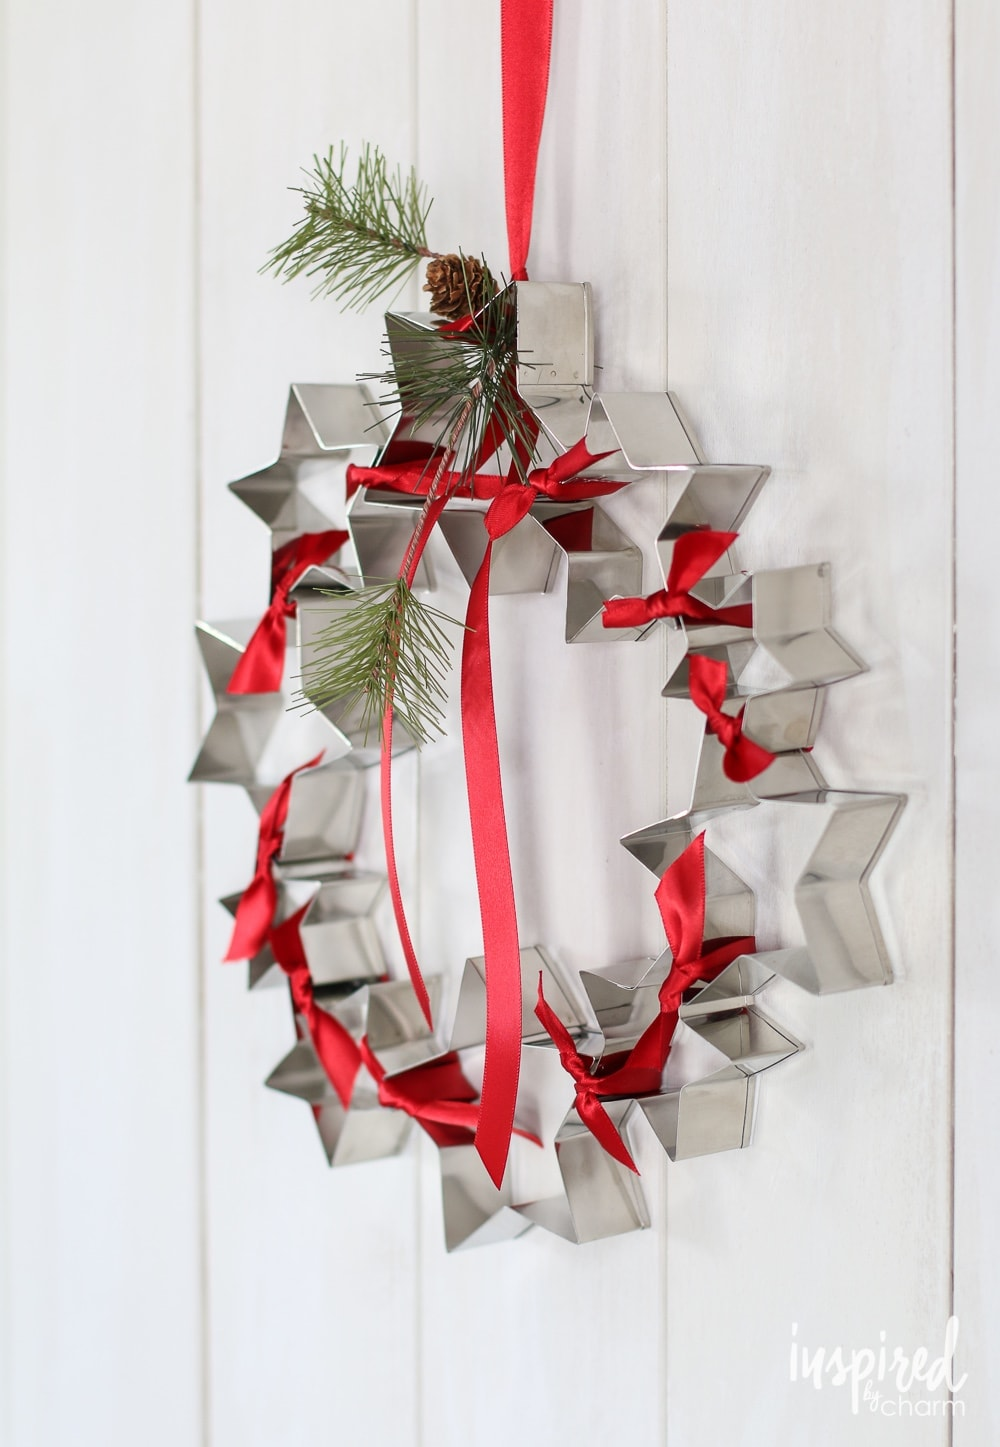 Cookie Cutter Wreath Tutorial